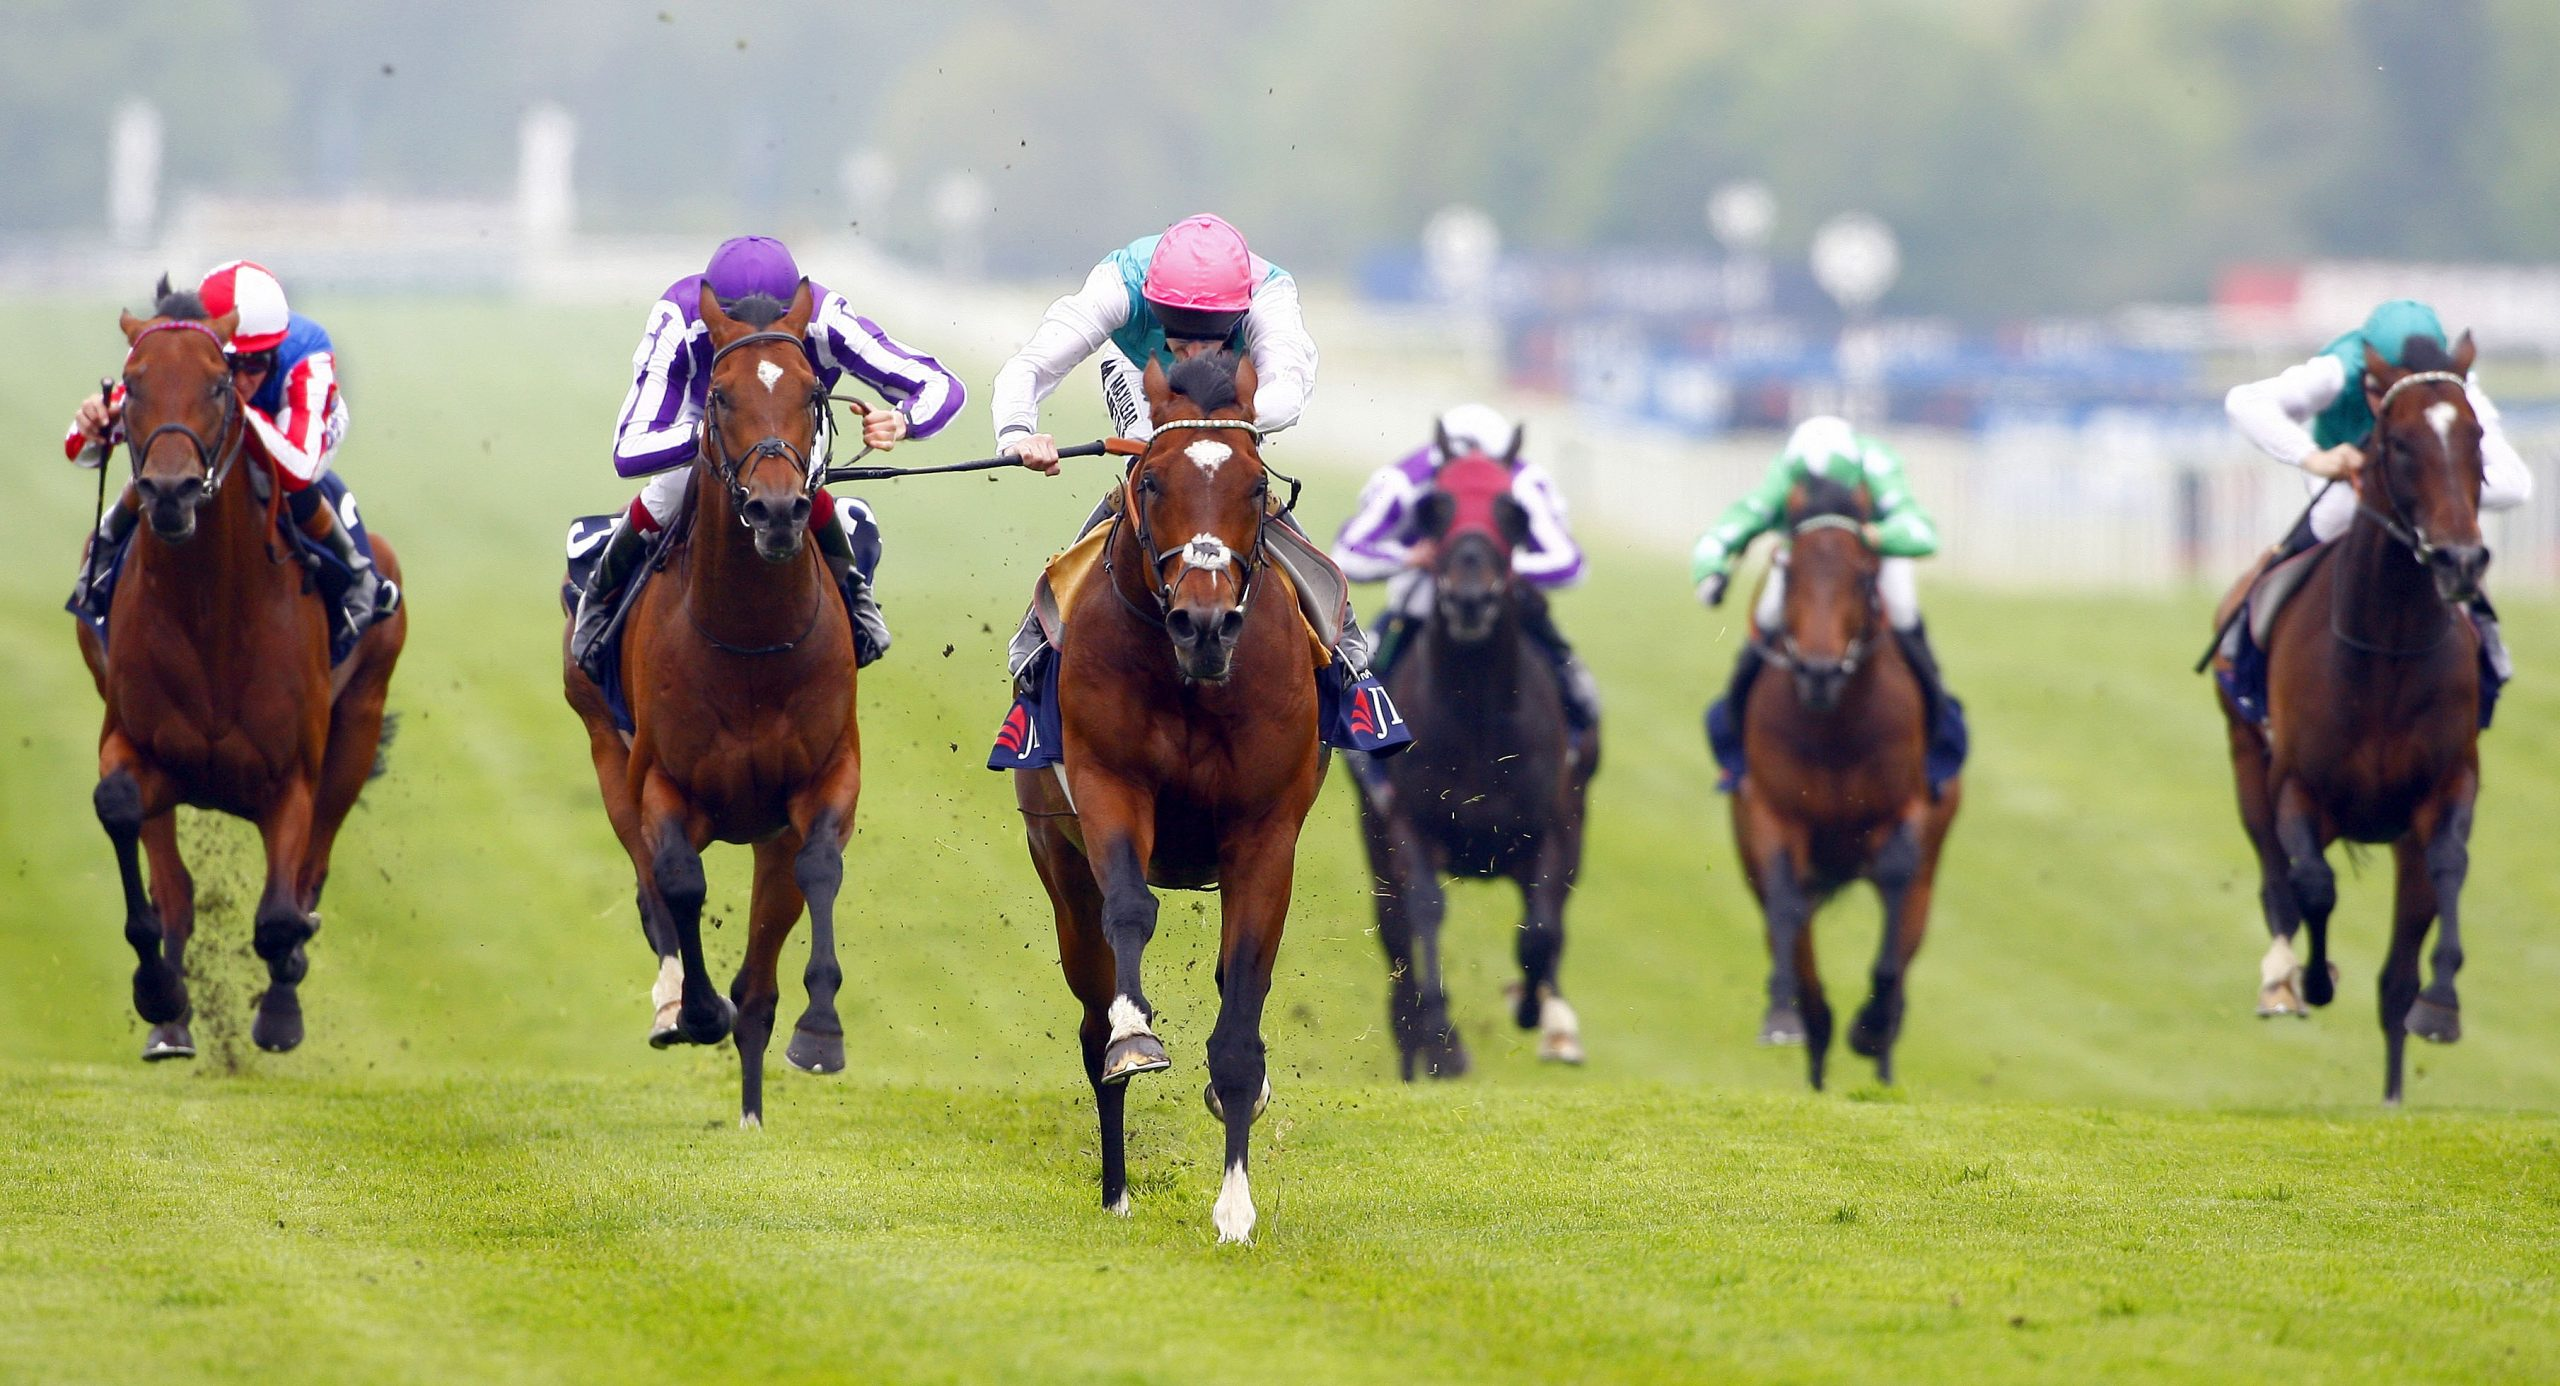 COVID-19 Could Cost British Racing £193m